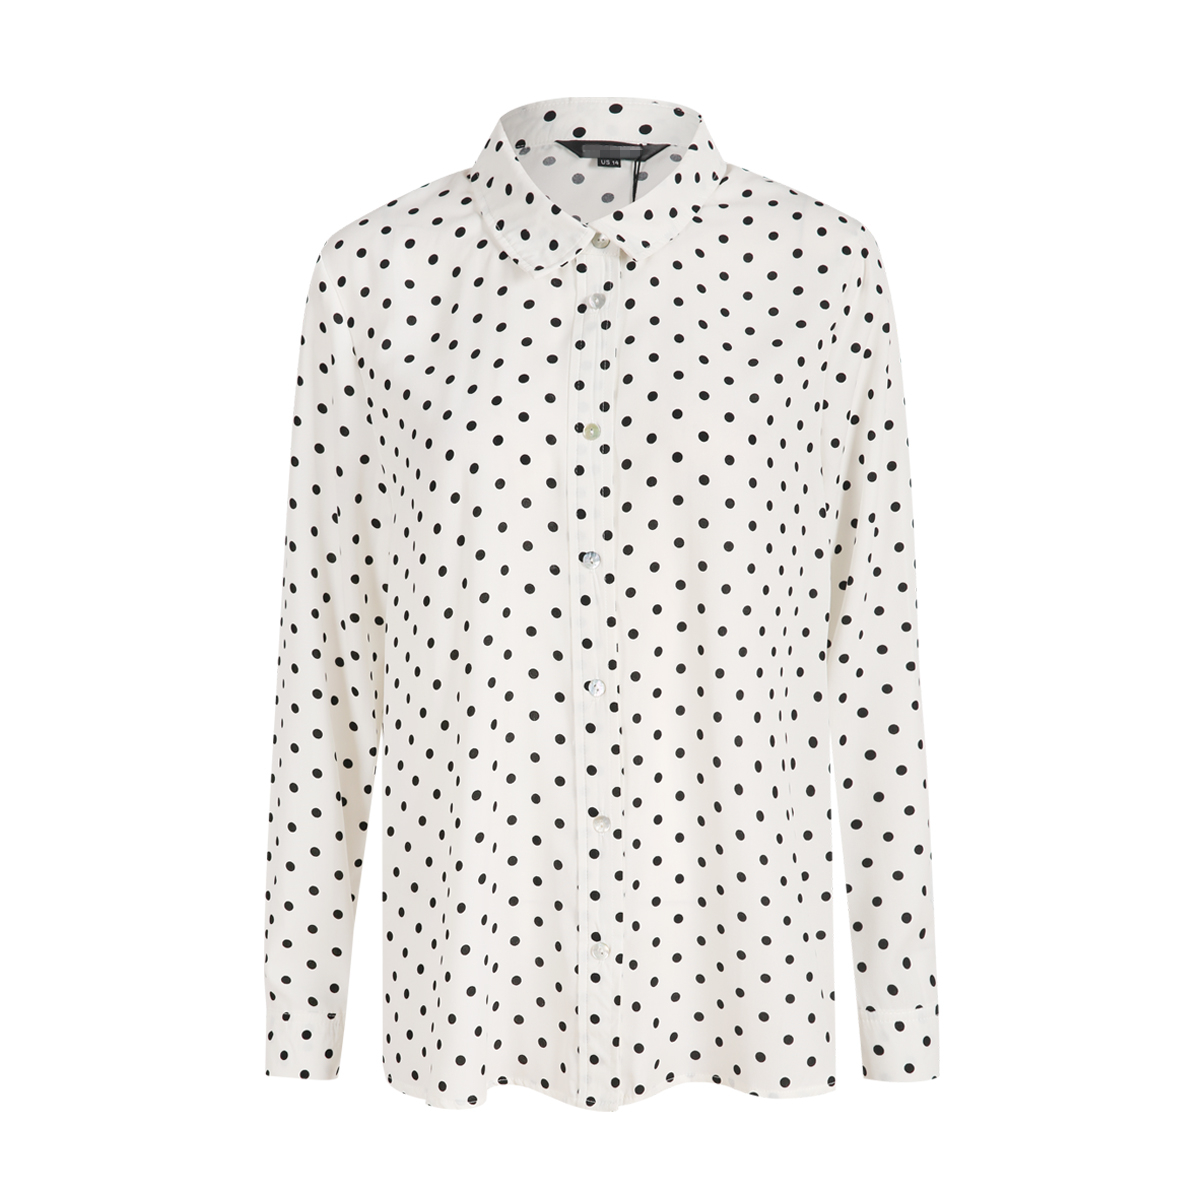 MCO New Basic Polka Dot Print Plus Size Women Blouse Casual Oversized Top Big Women Clothing Simple Spot Loose Shirt 5xl 6xl 7xl